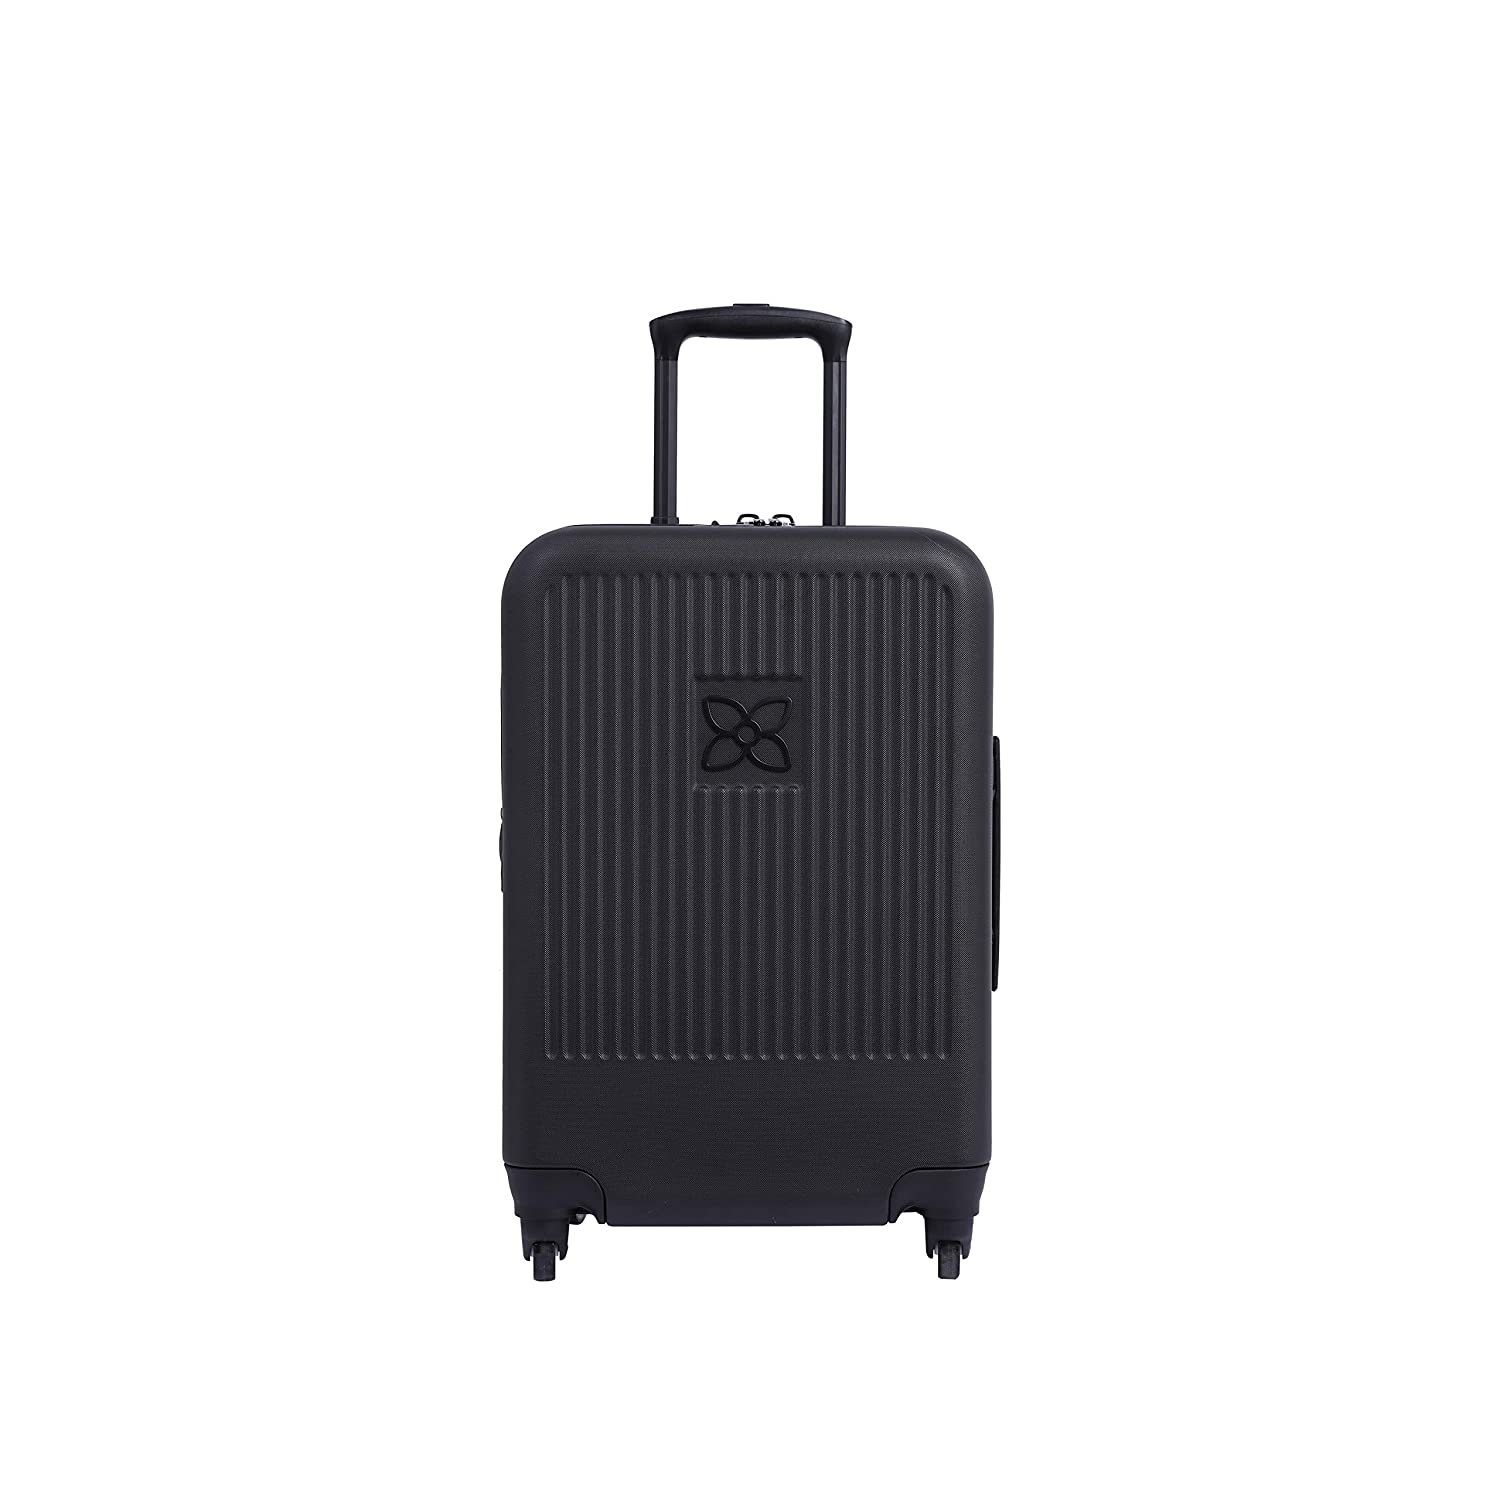 Sherpani Meridian, Lightweight Carry On Hardside Travel Luggage with Spinner Wheels